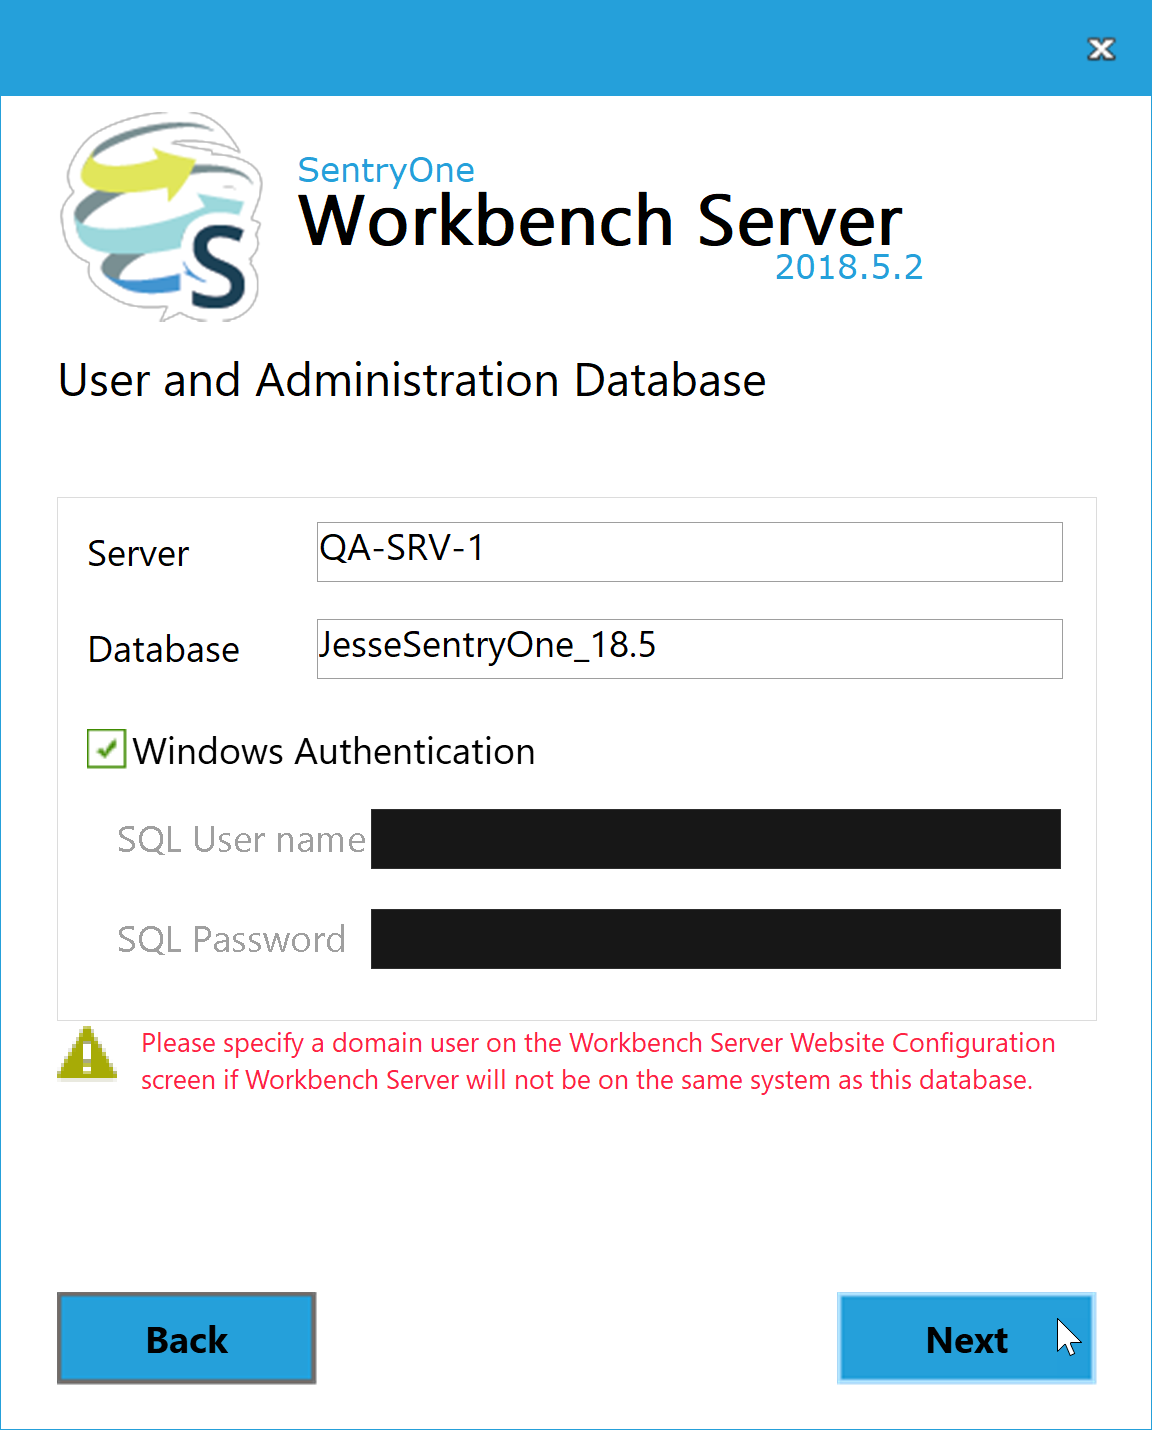 Workbench Server User and Administration Database